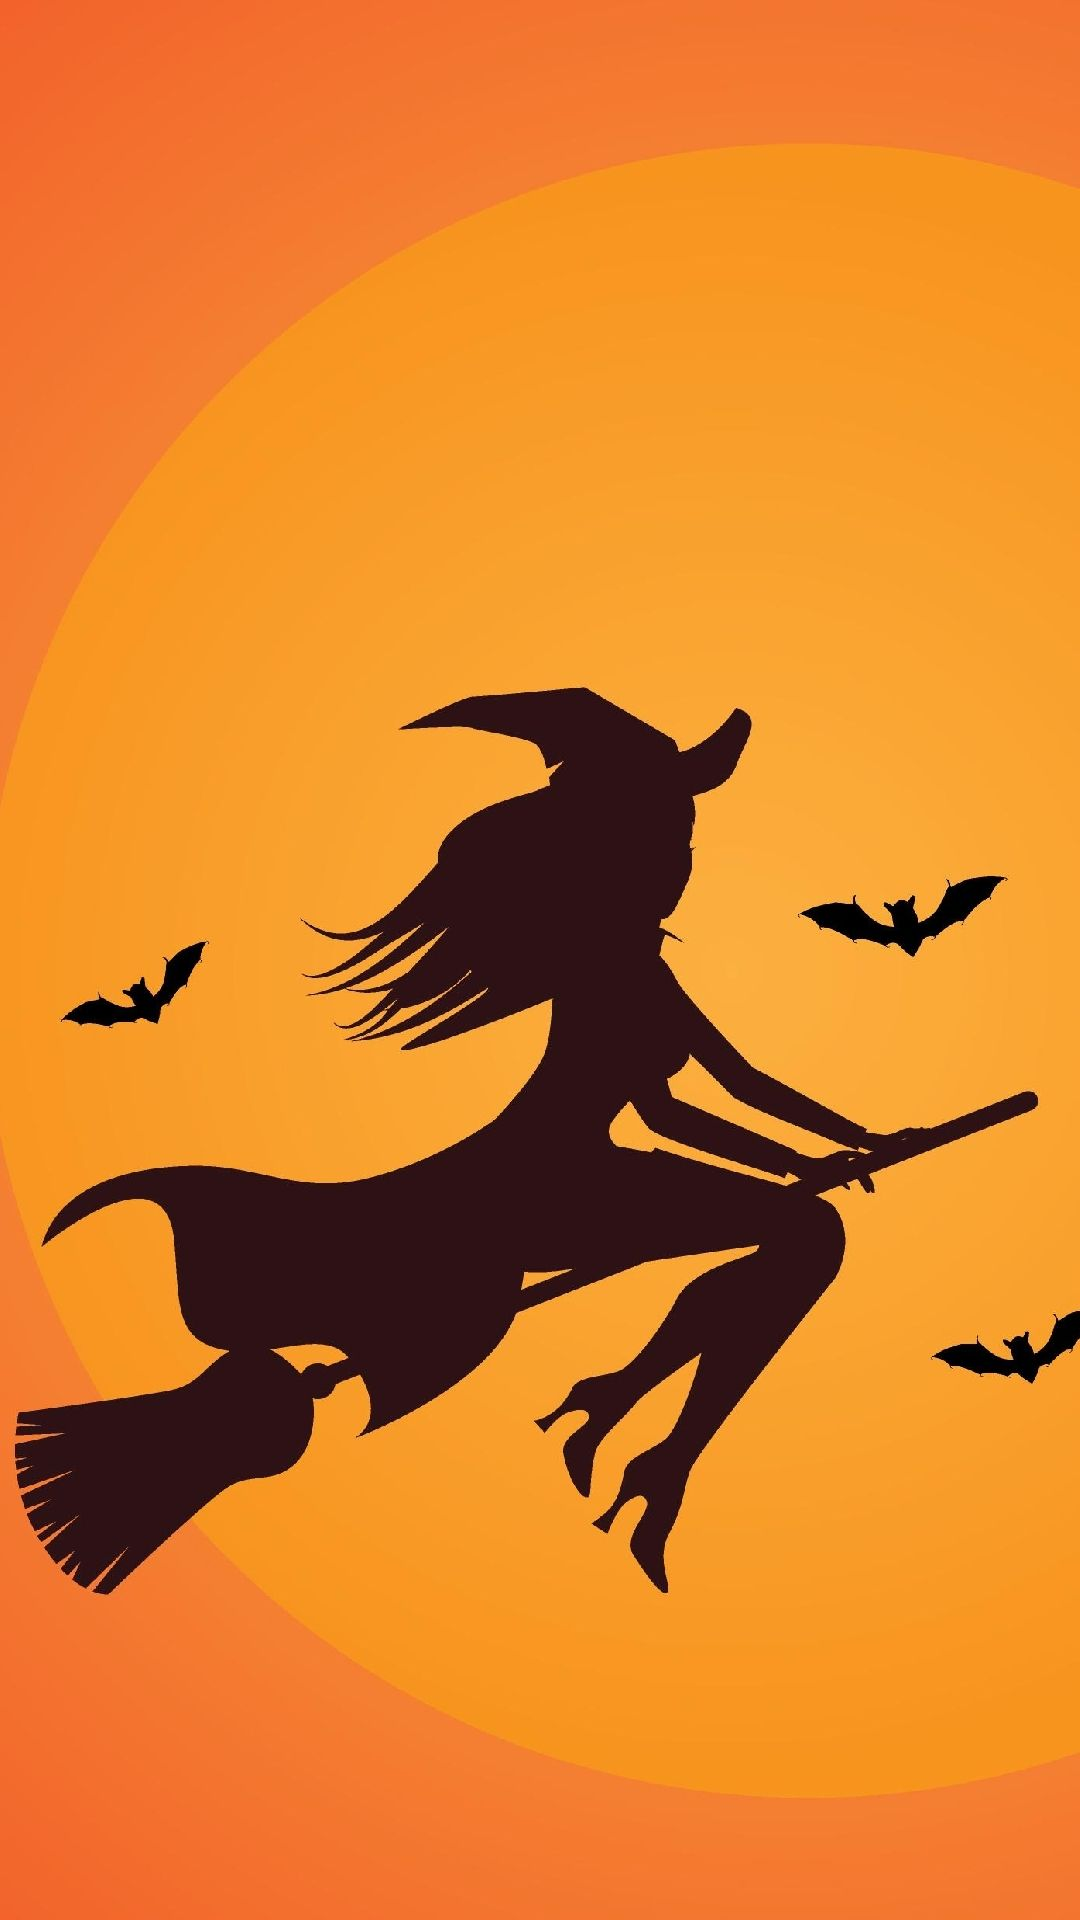 Iphone Wallpaper Witch Google Search Halloween Wallpaper Halloween Wallpaper Iphone Witch Wallpaper